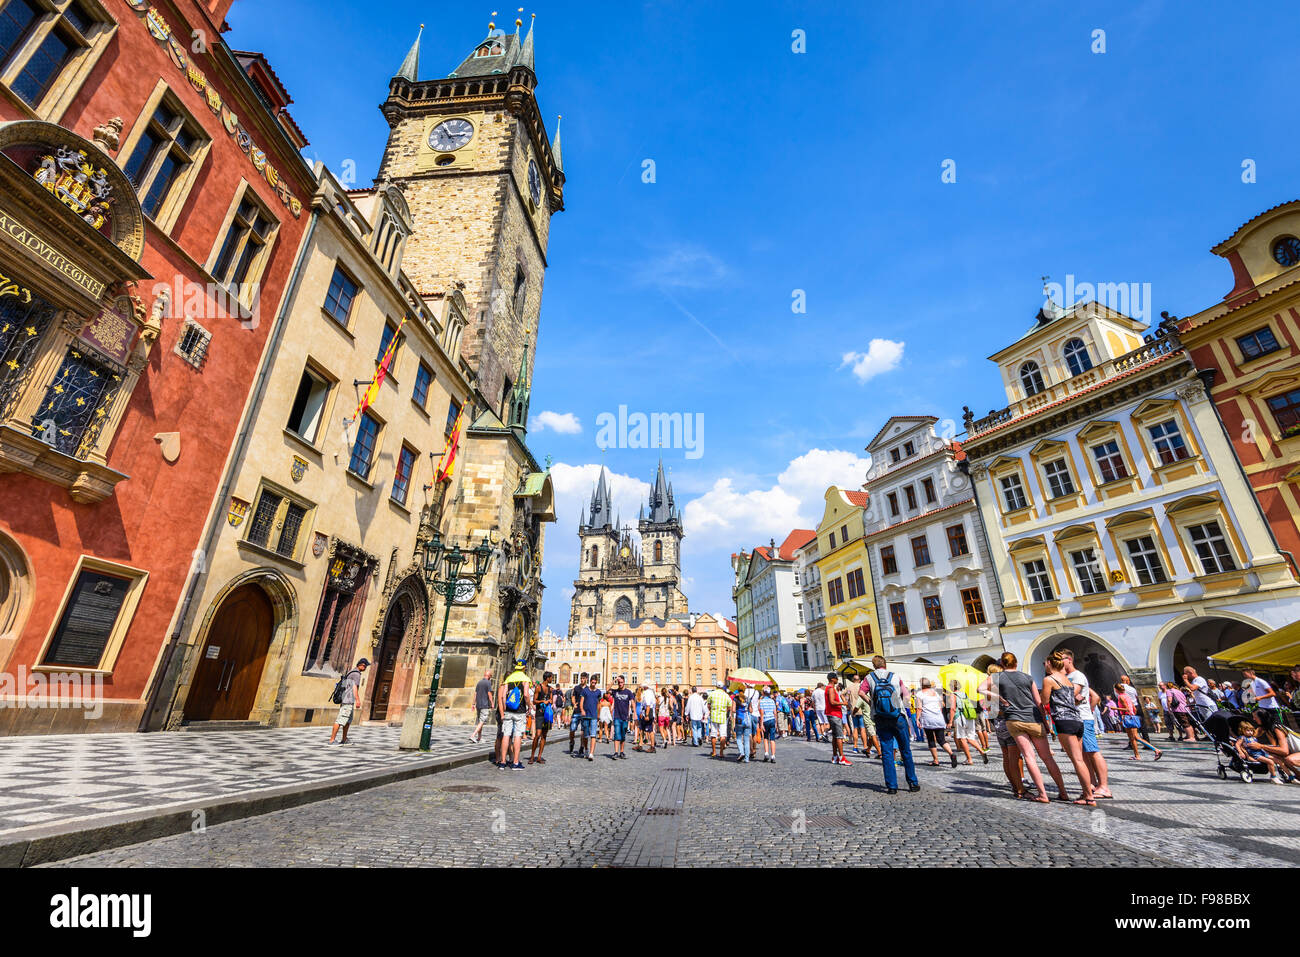 Tourists in Stare Mesto Square with Old Town Tower and Tyn Church, main attraction of Prague, Bohemia. - Stock Image